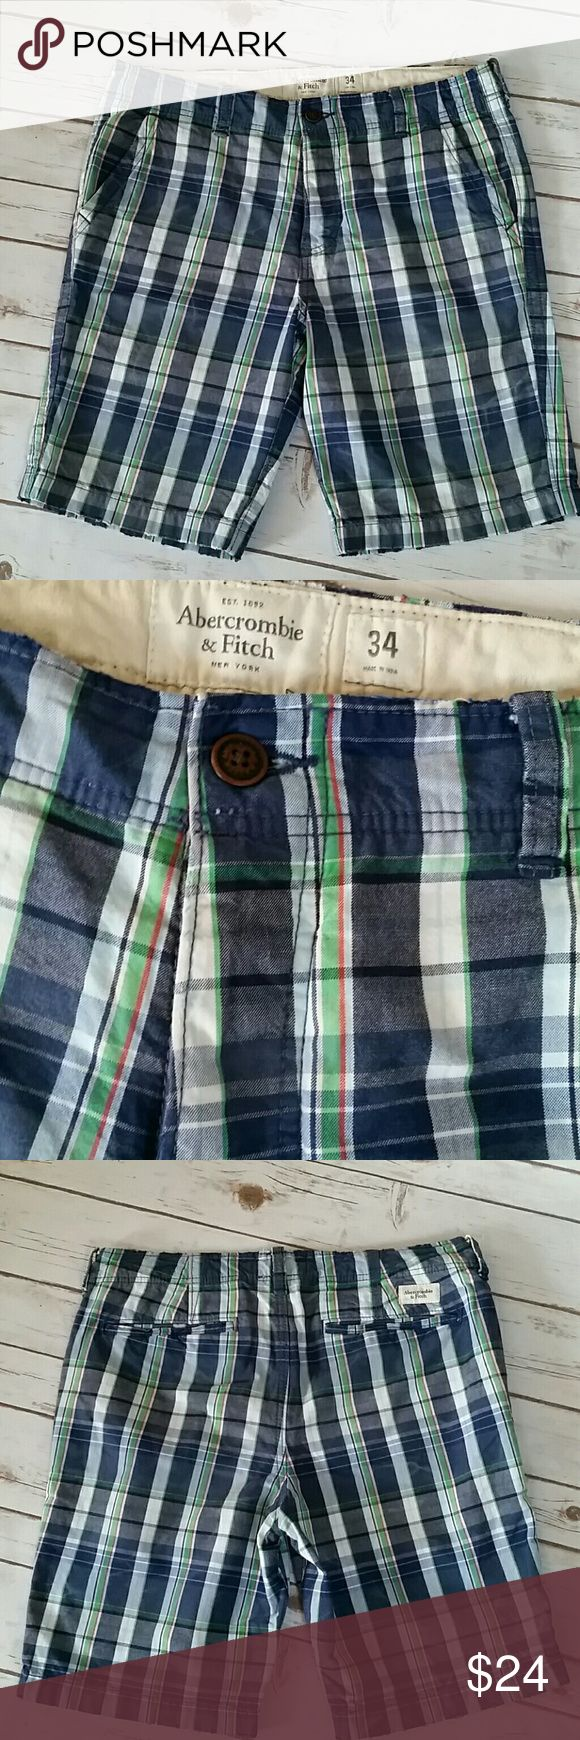 Abercrombie & Fitch Men's Plaid Shorts Awesome cotton, plaid shorts. Size 34, front & back pockets, button fly. Frayed/distressed edging, this is part of the design. Coloring of shorts is a navy, white, green & red. Very preppy style, heavier material, extremely well made. Like new, worn a few times, excellent condition. Abercrombie & Fitch Shorts